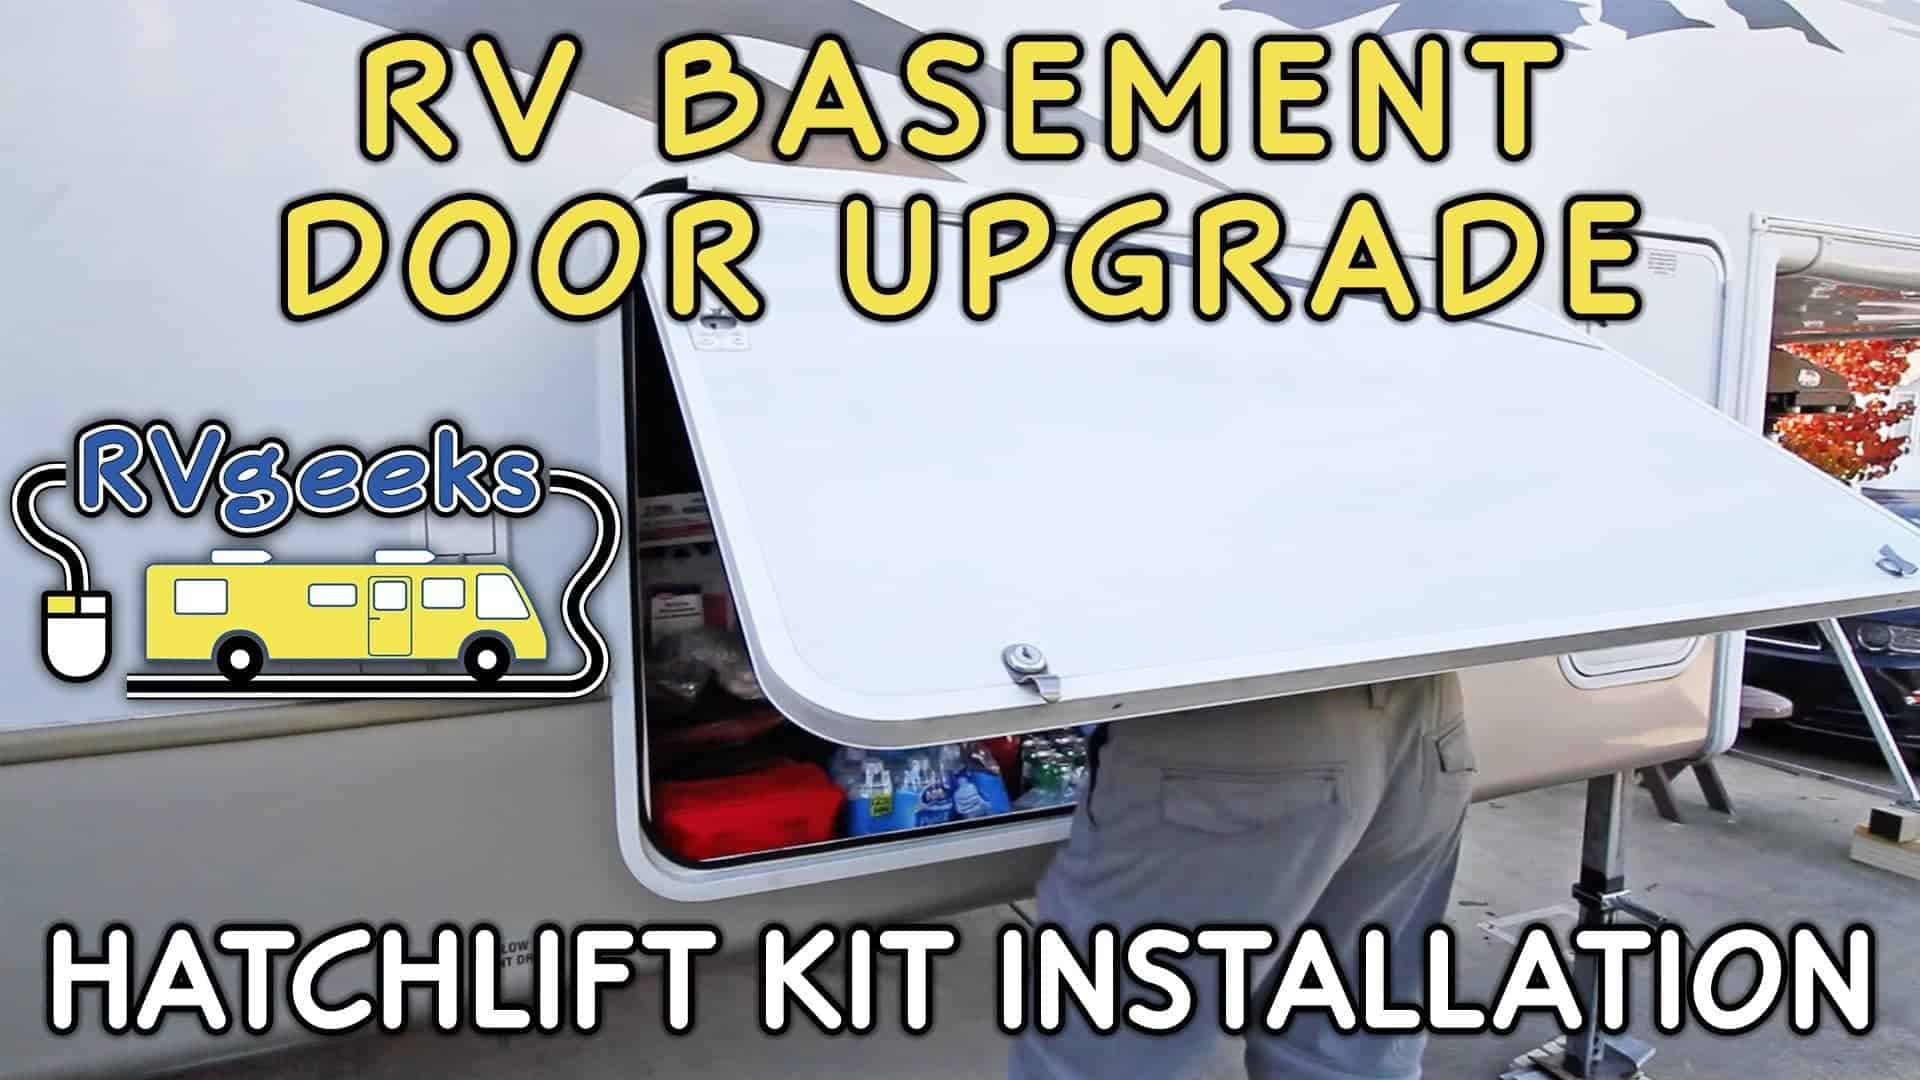 Hatchlift Rv Basement Door Lift Kit Installation